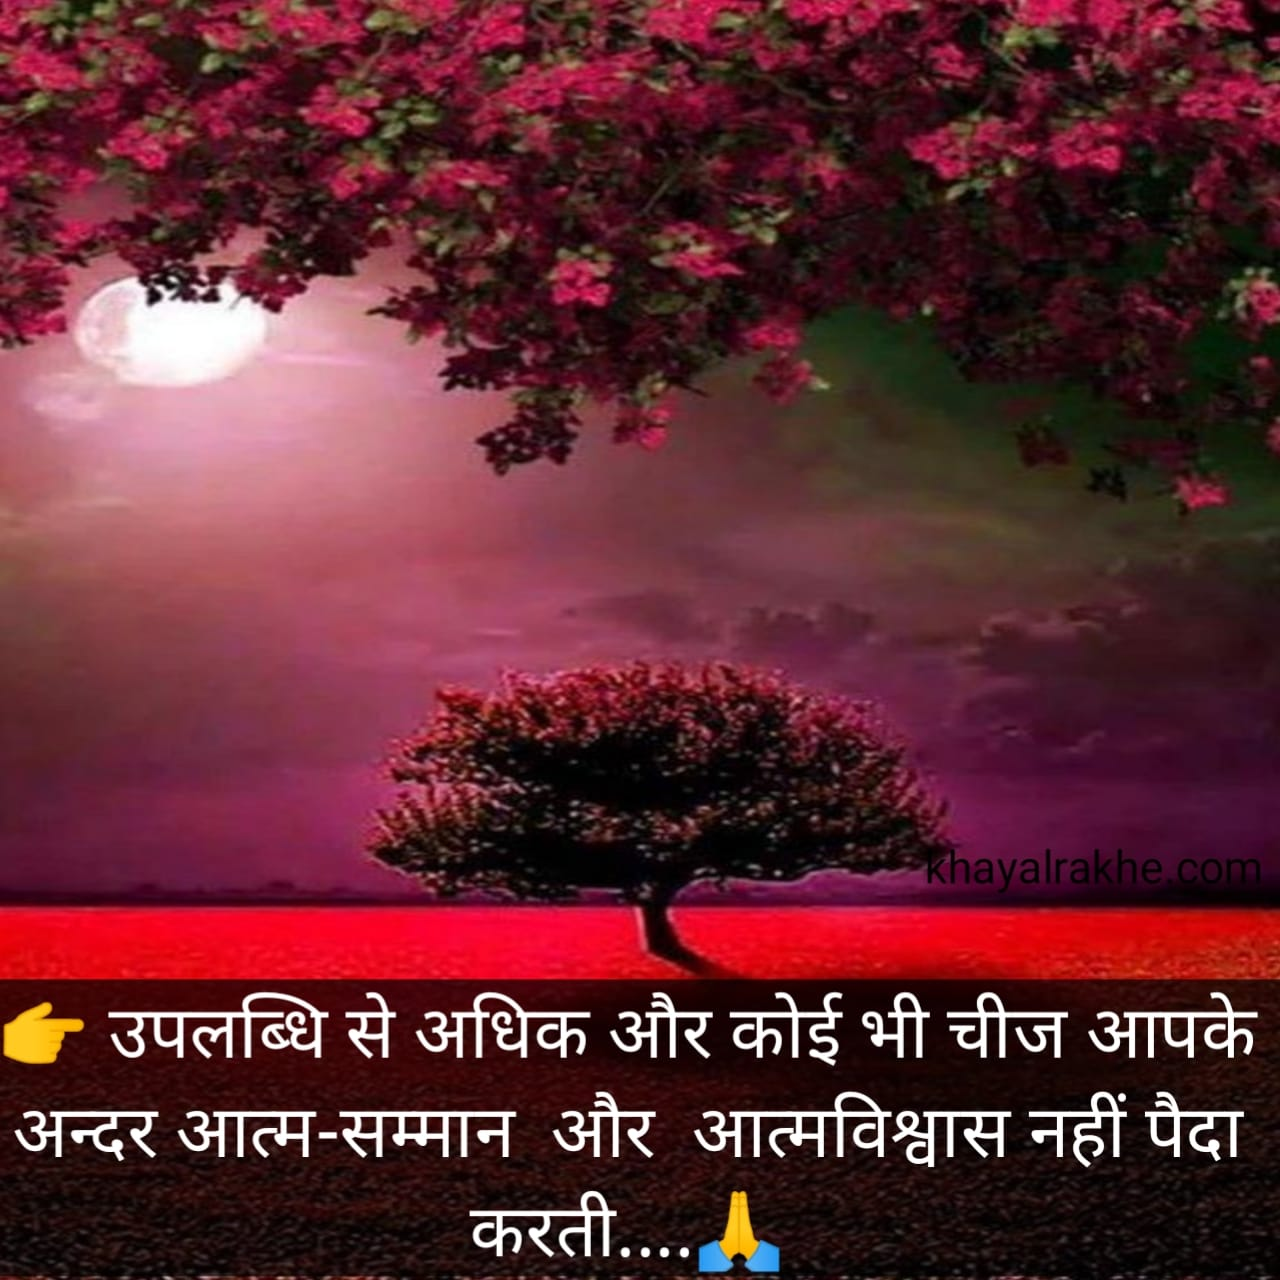 Best Inspirational Caption in Hindi